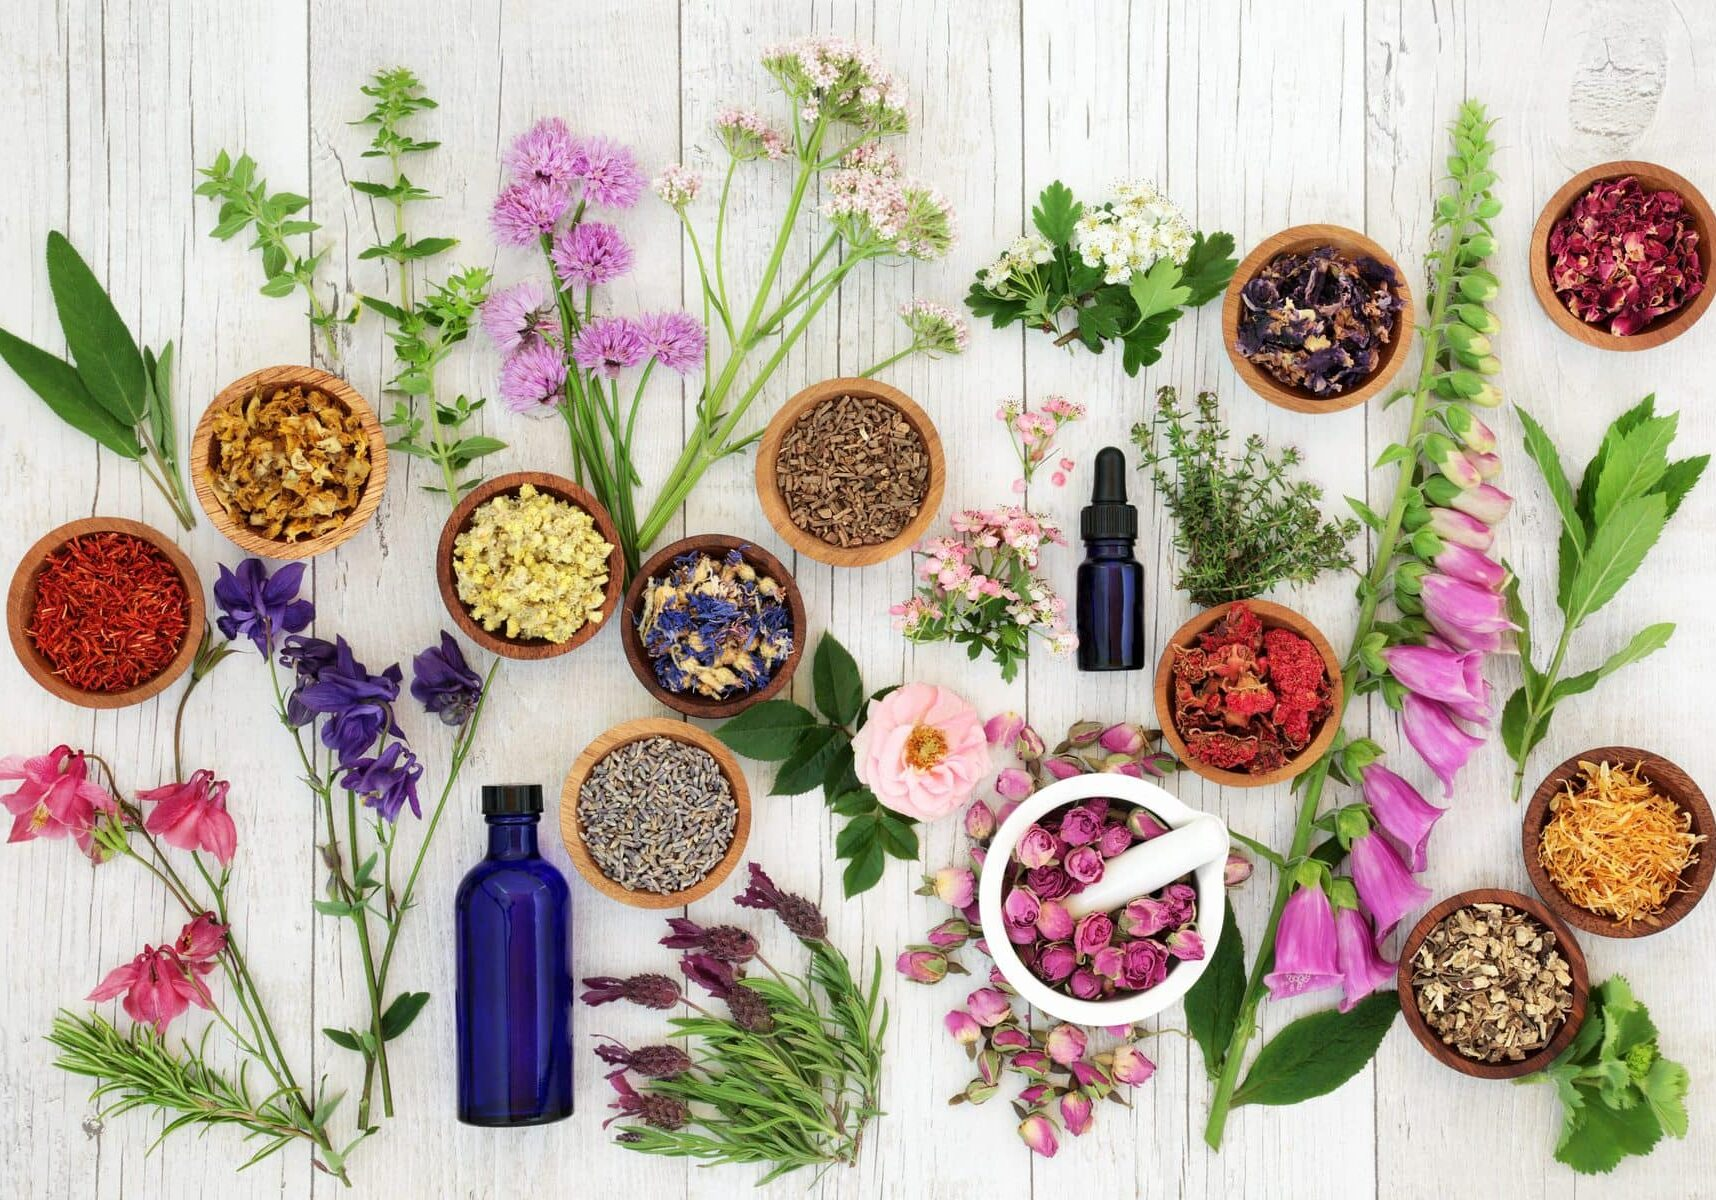 Natural herbal medicine selection with herbs and flowers in wooden bowls and loose, glass aromatherapy essential oil bottles and mortar with pestle on rustoic wood background. Top view.